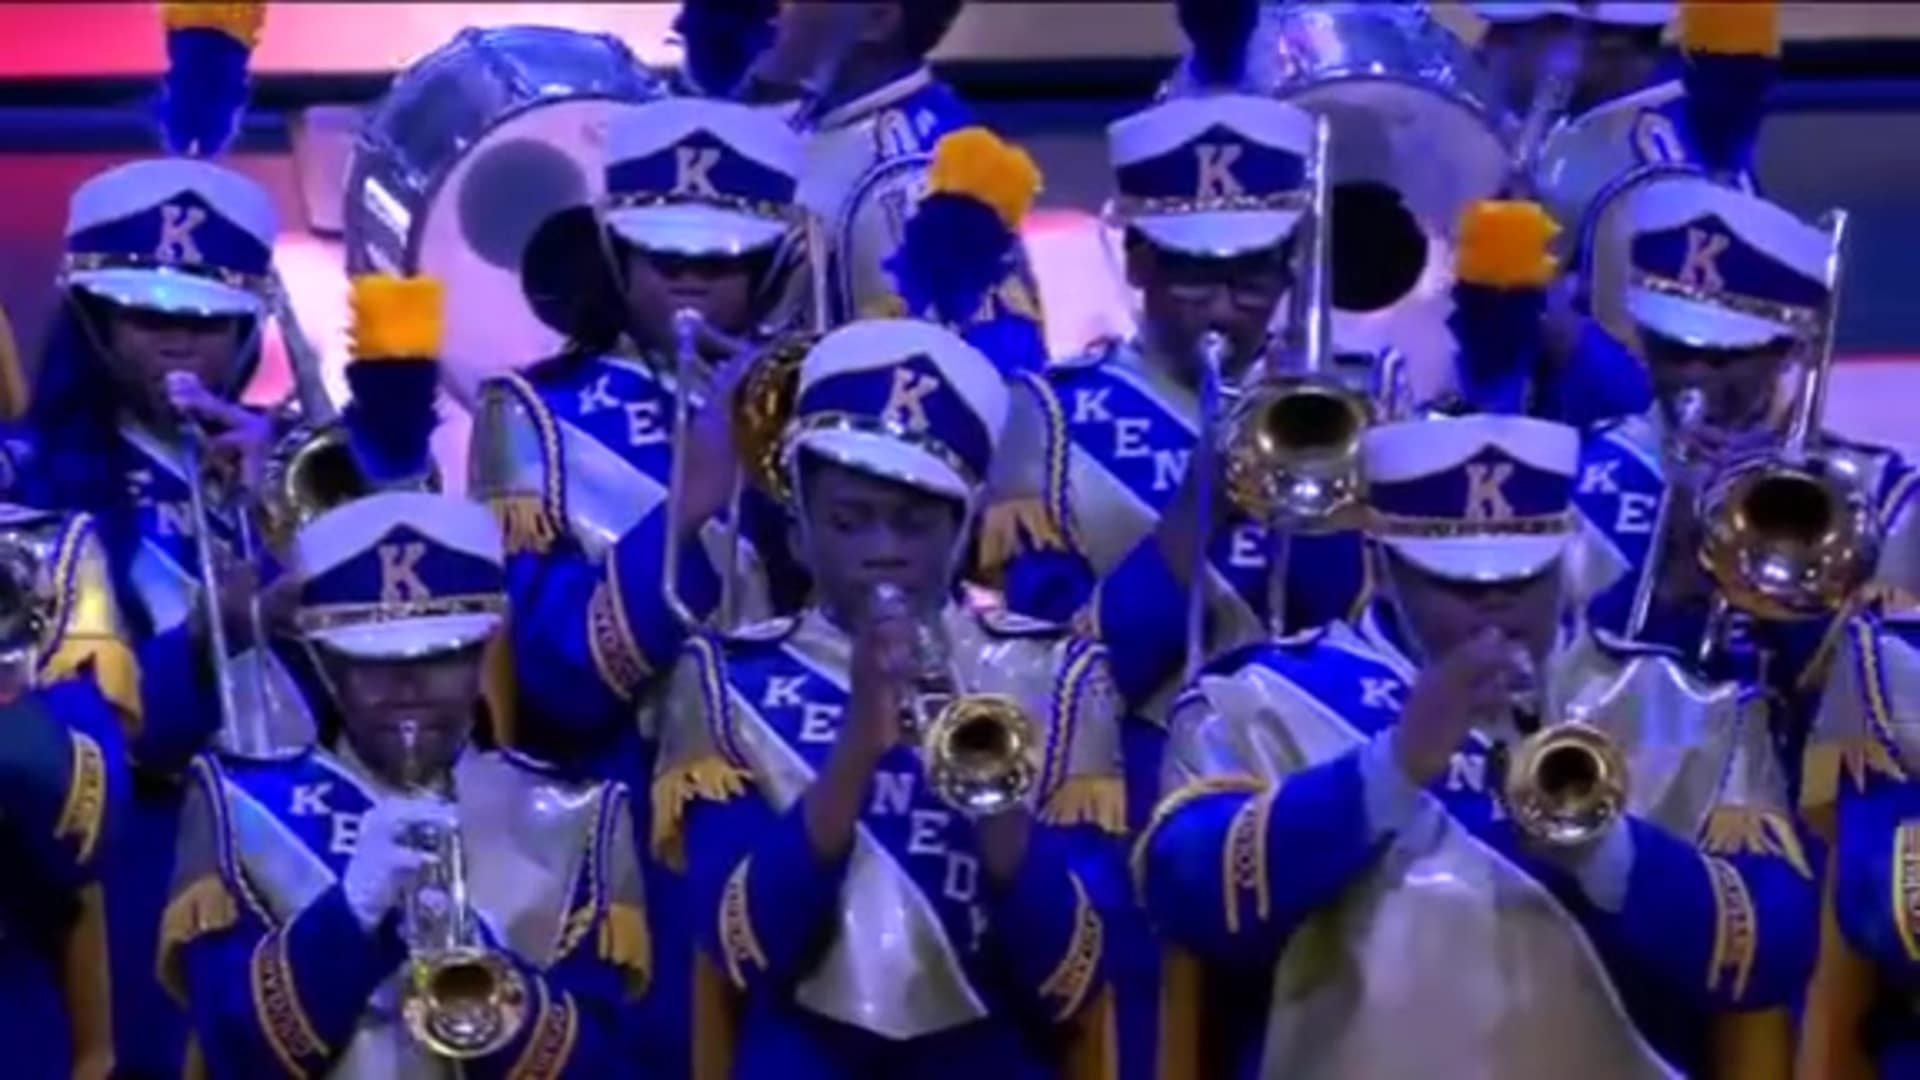 Pelicans Halftime: John F. Kennedy Marching Band - December 3, 2019 vs. Dallas Mavericks